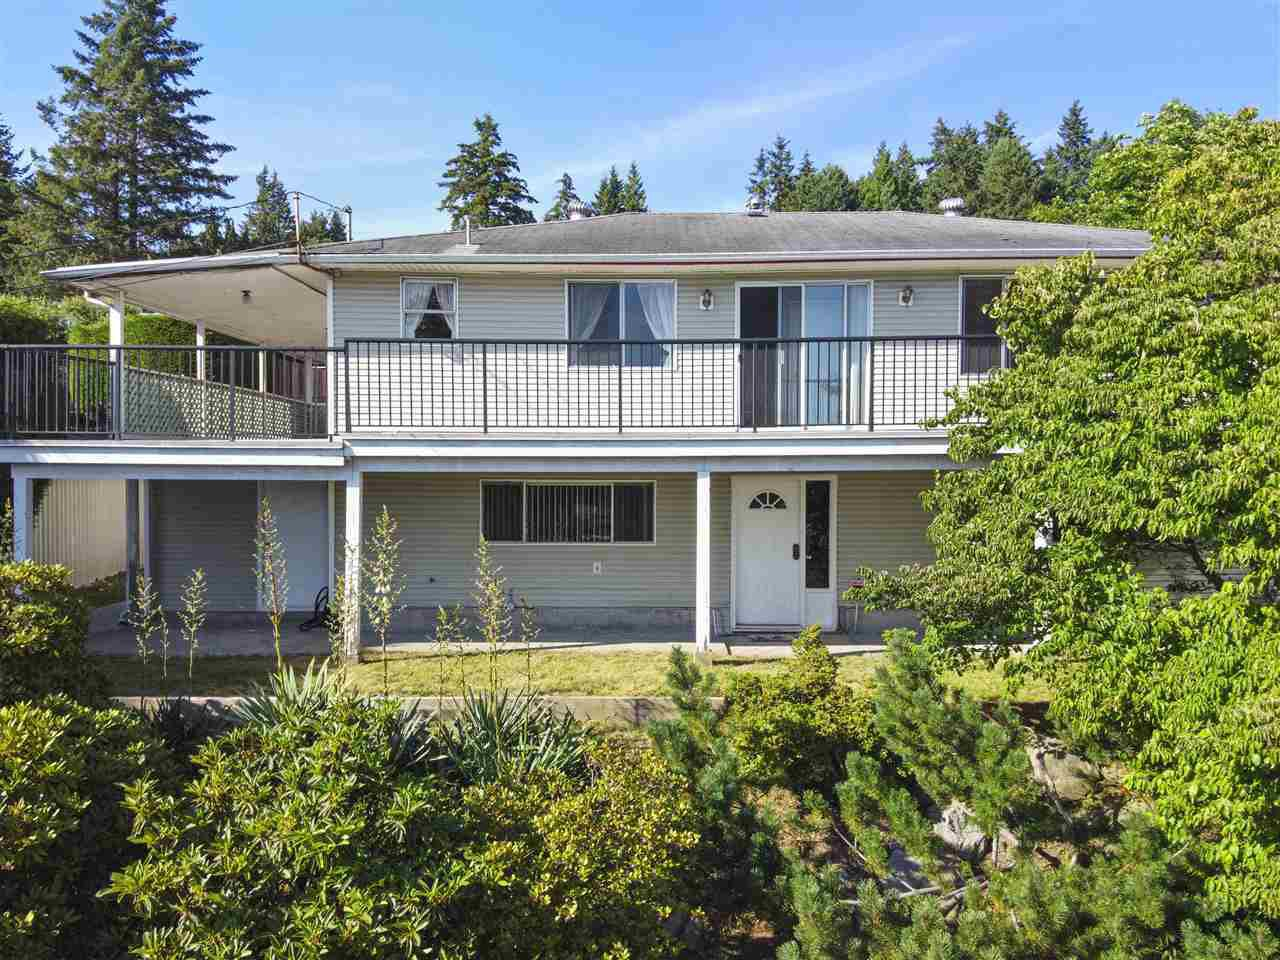 Main Photo: 1731 SHERIDAN Avenue in Coquitlam: Central Coquitlam House for sale : MLS®# R2490926